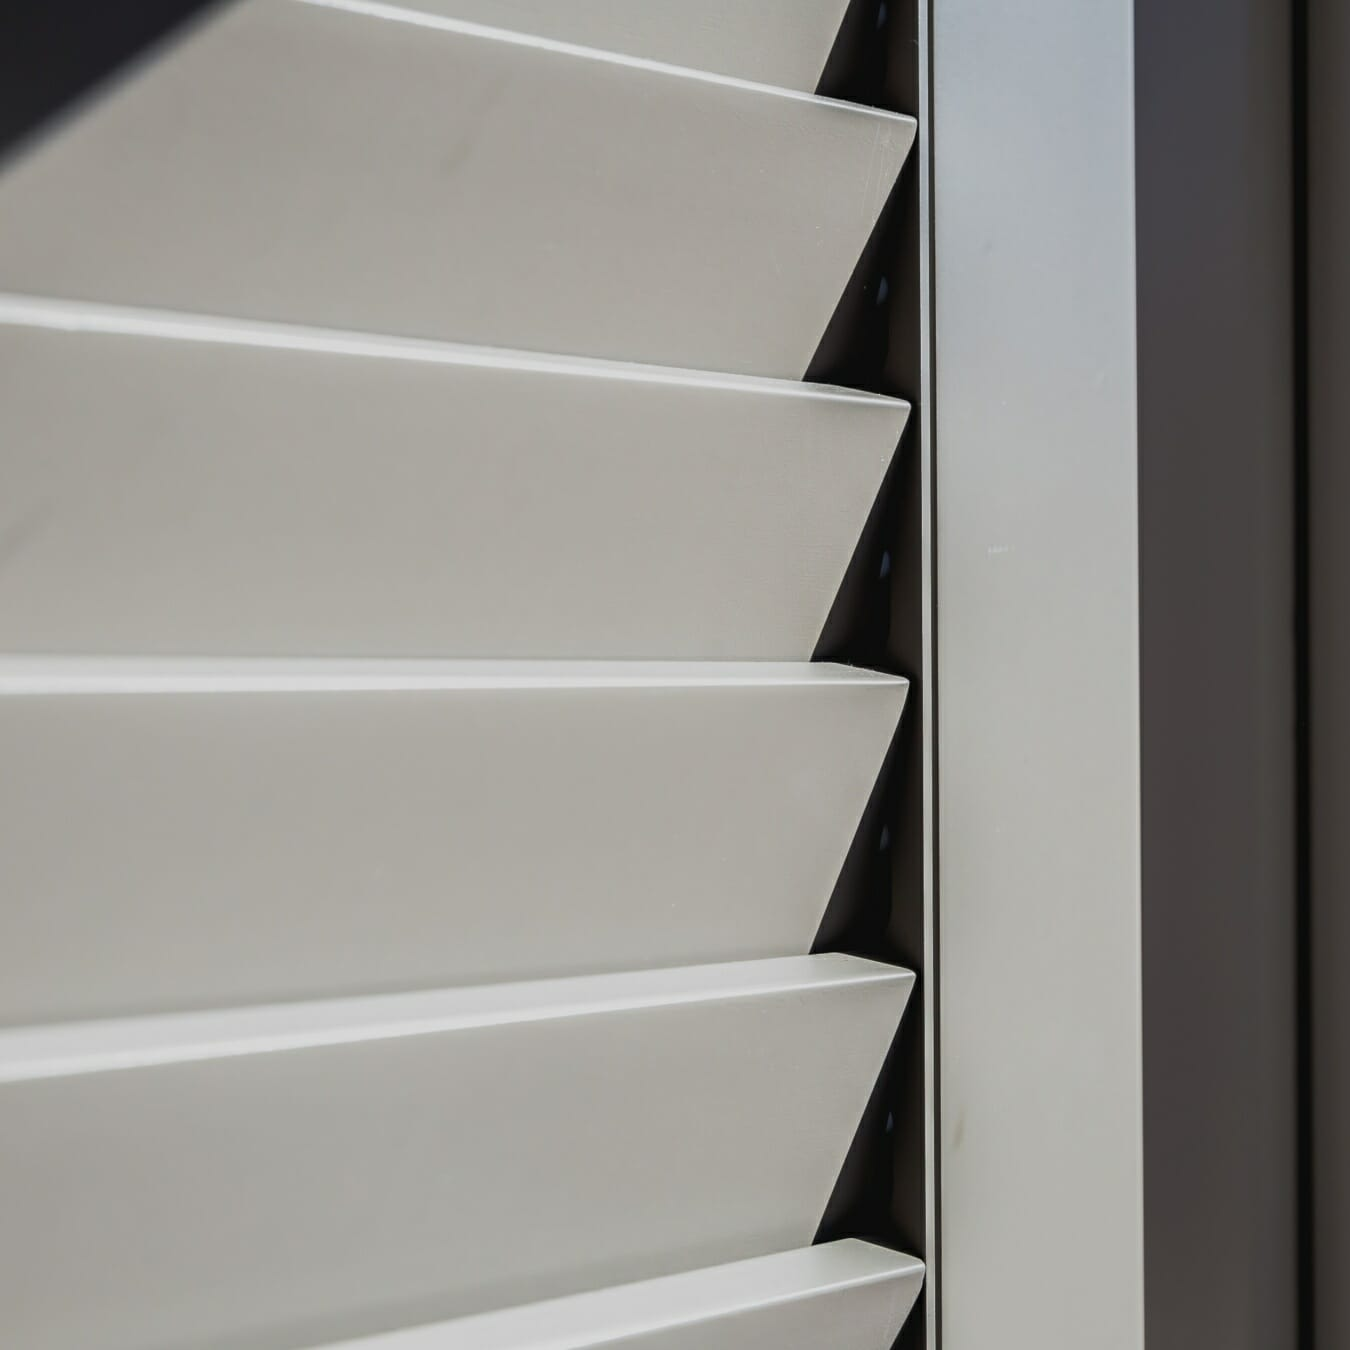 Piet Boon shutters by Zonnelux detail